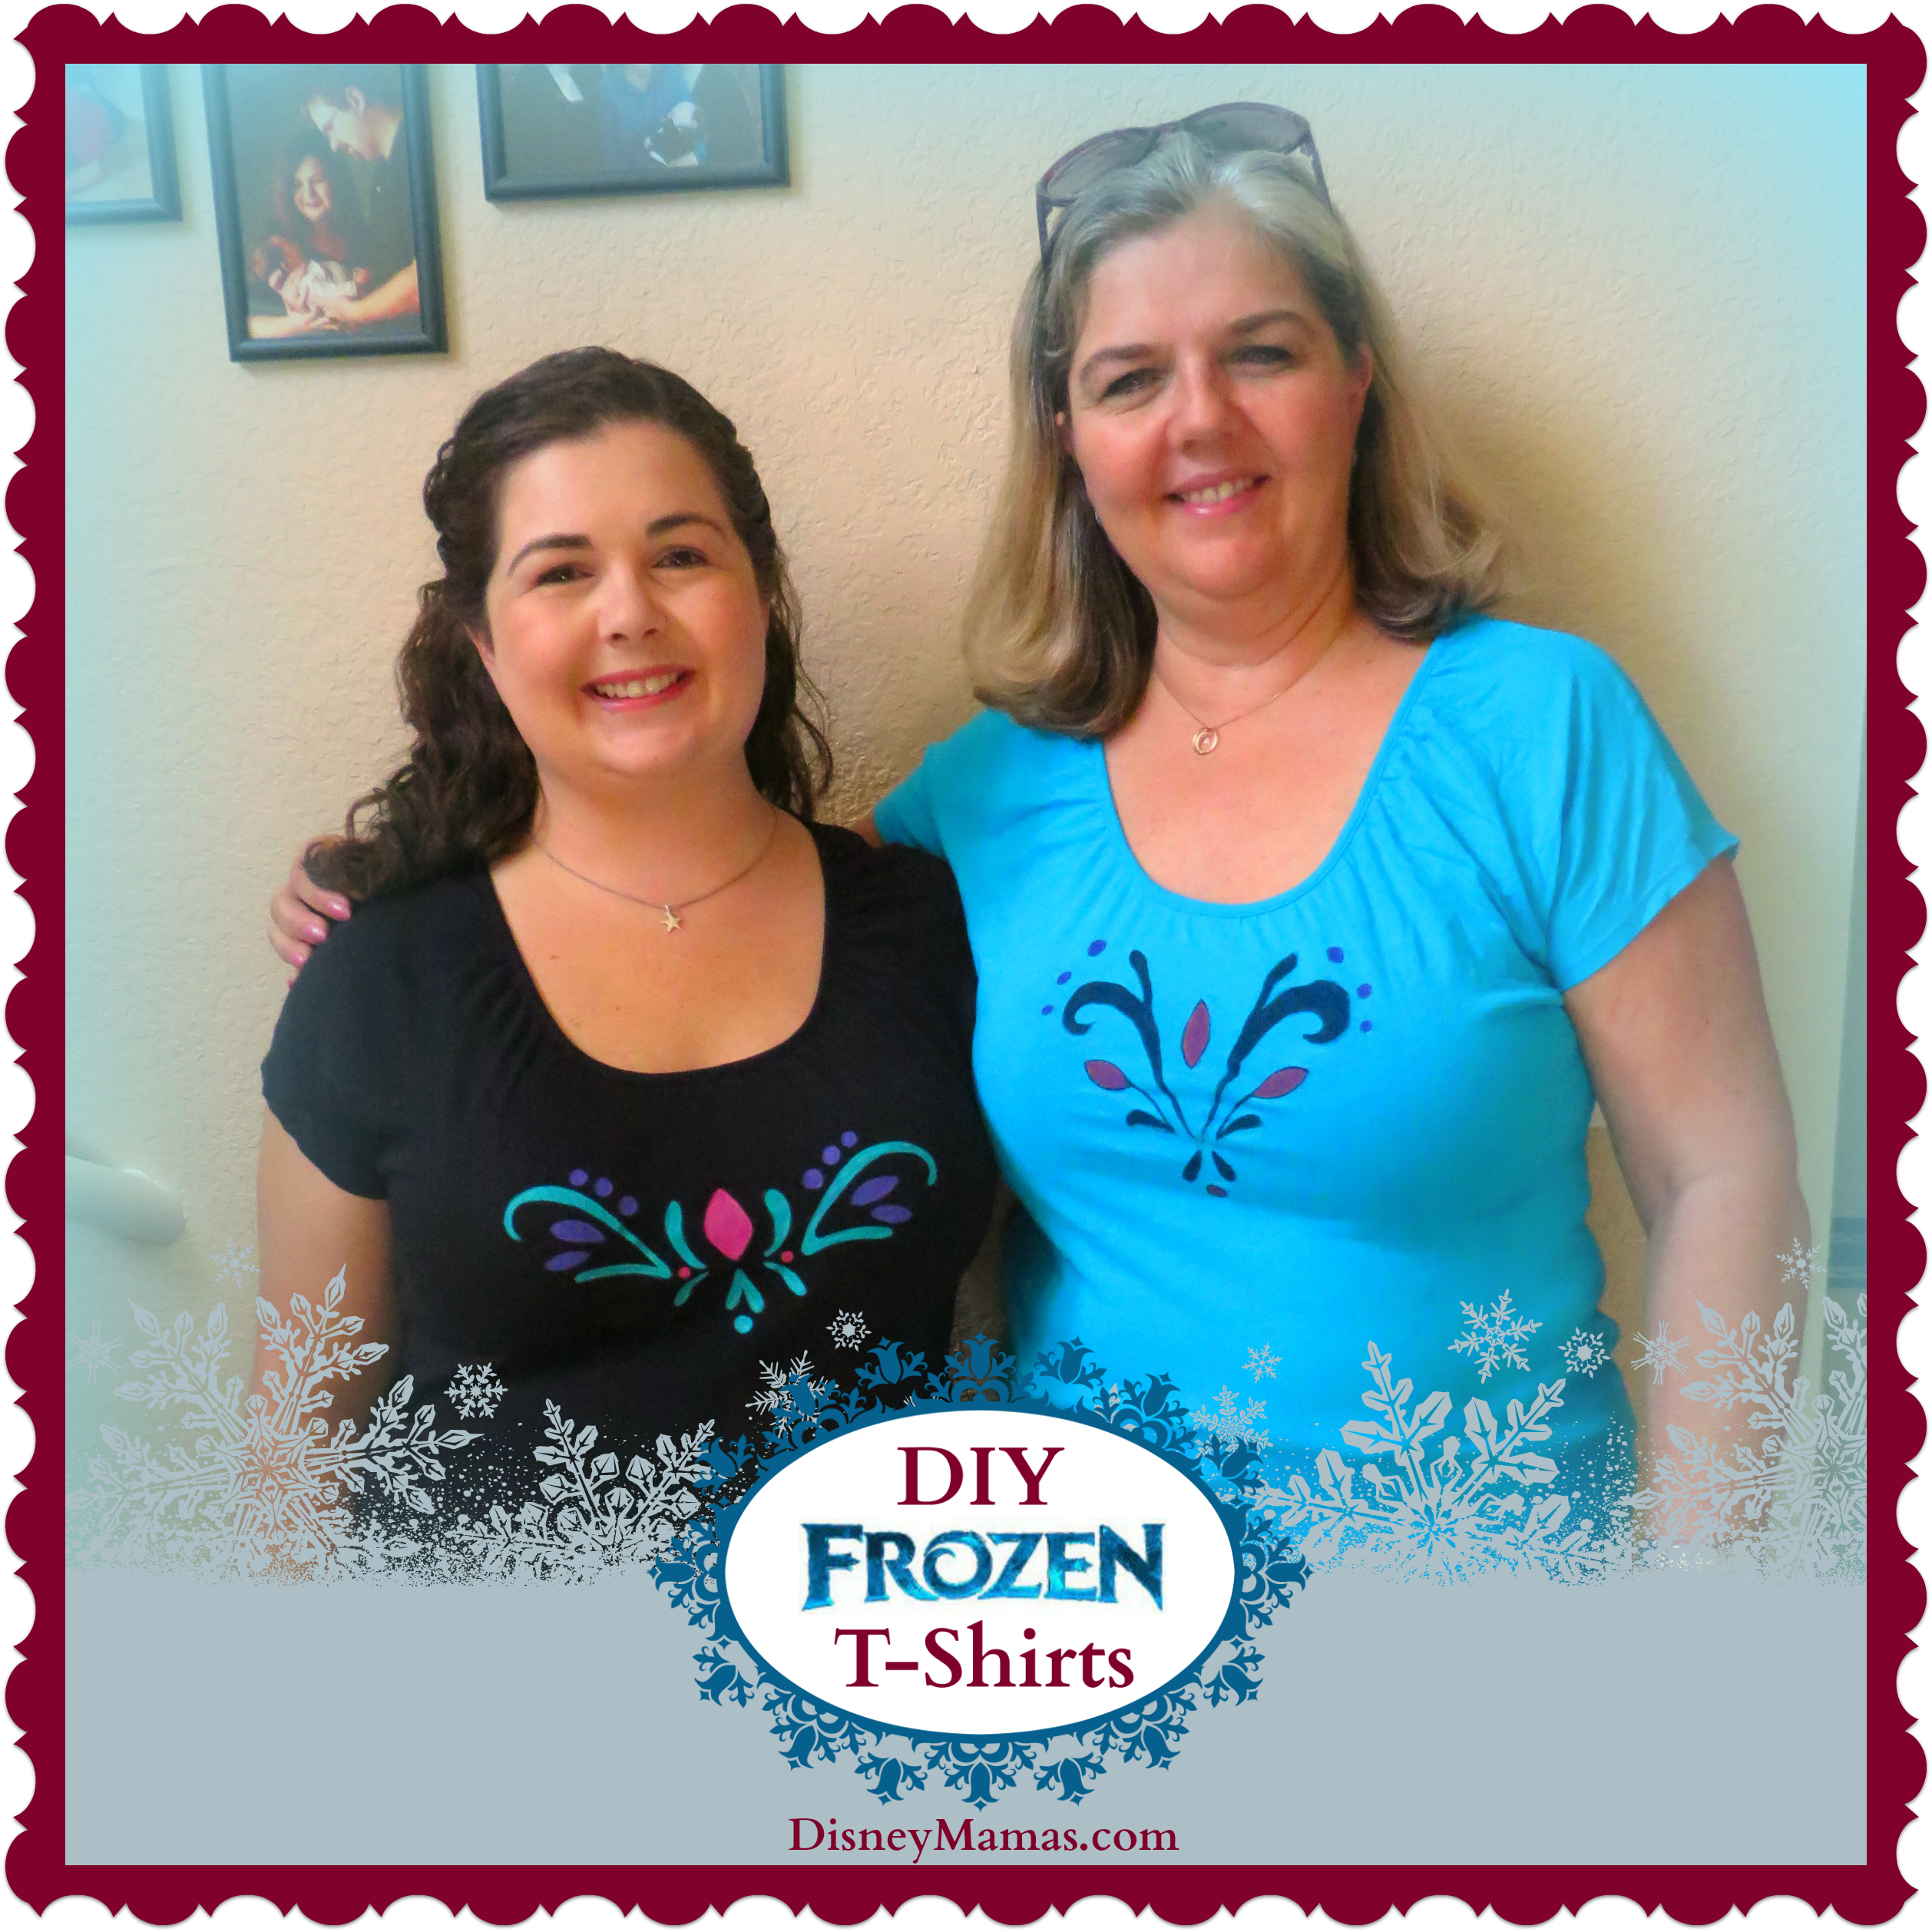 DIY Frozen T-Shirts from Disney Mamas.